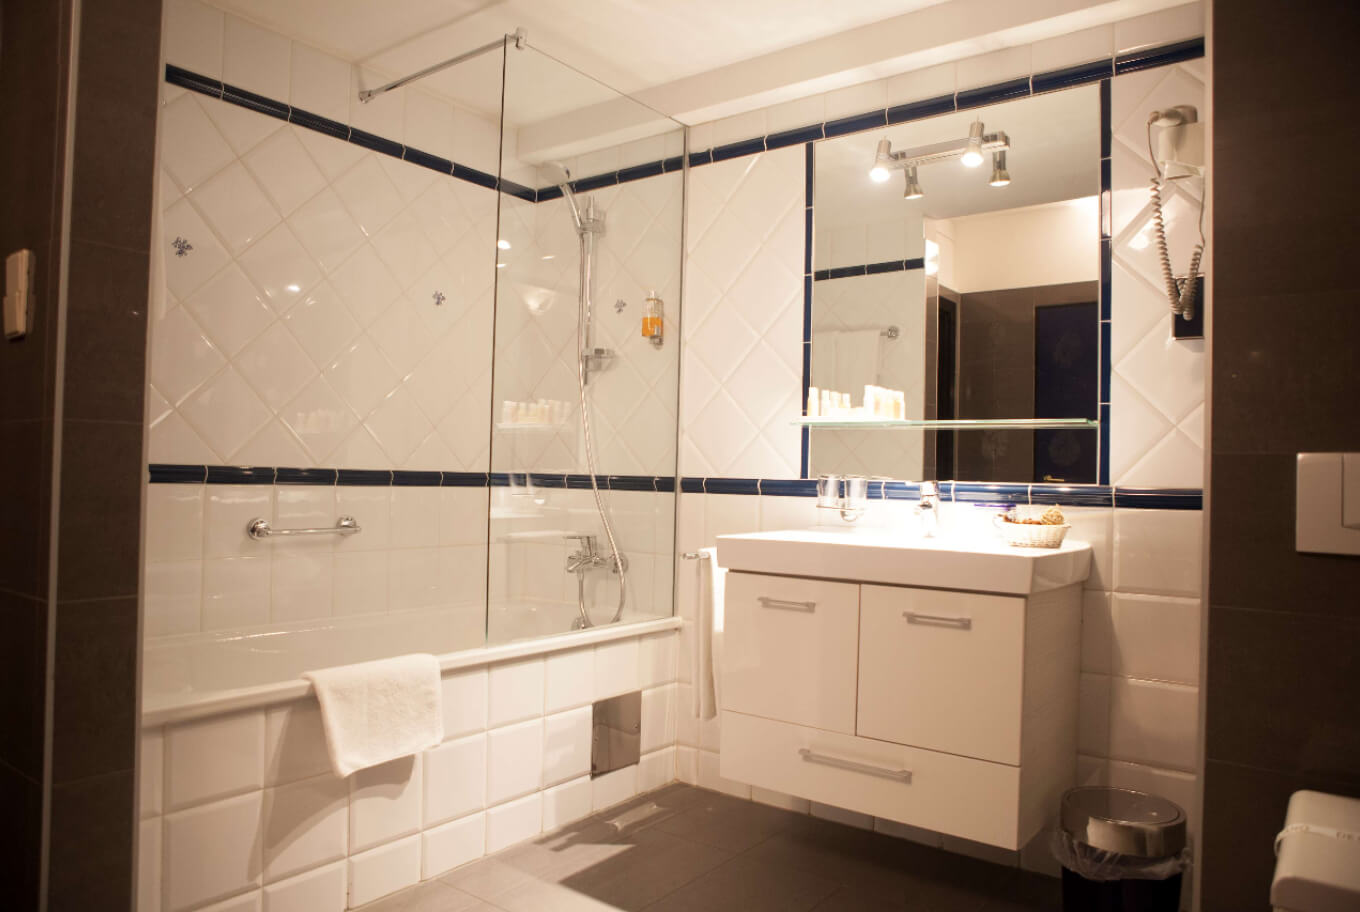 One of our bathrooms at Arthotel ANA Gala Wien.